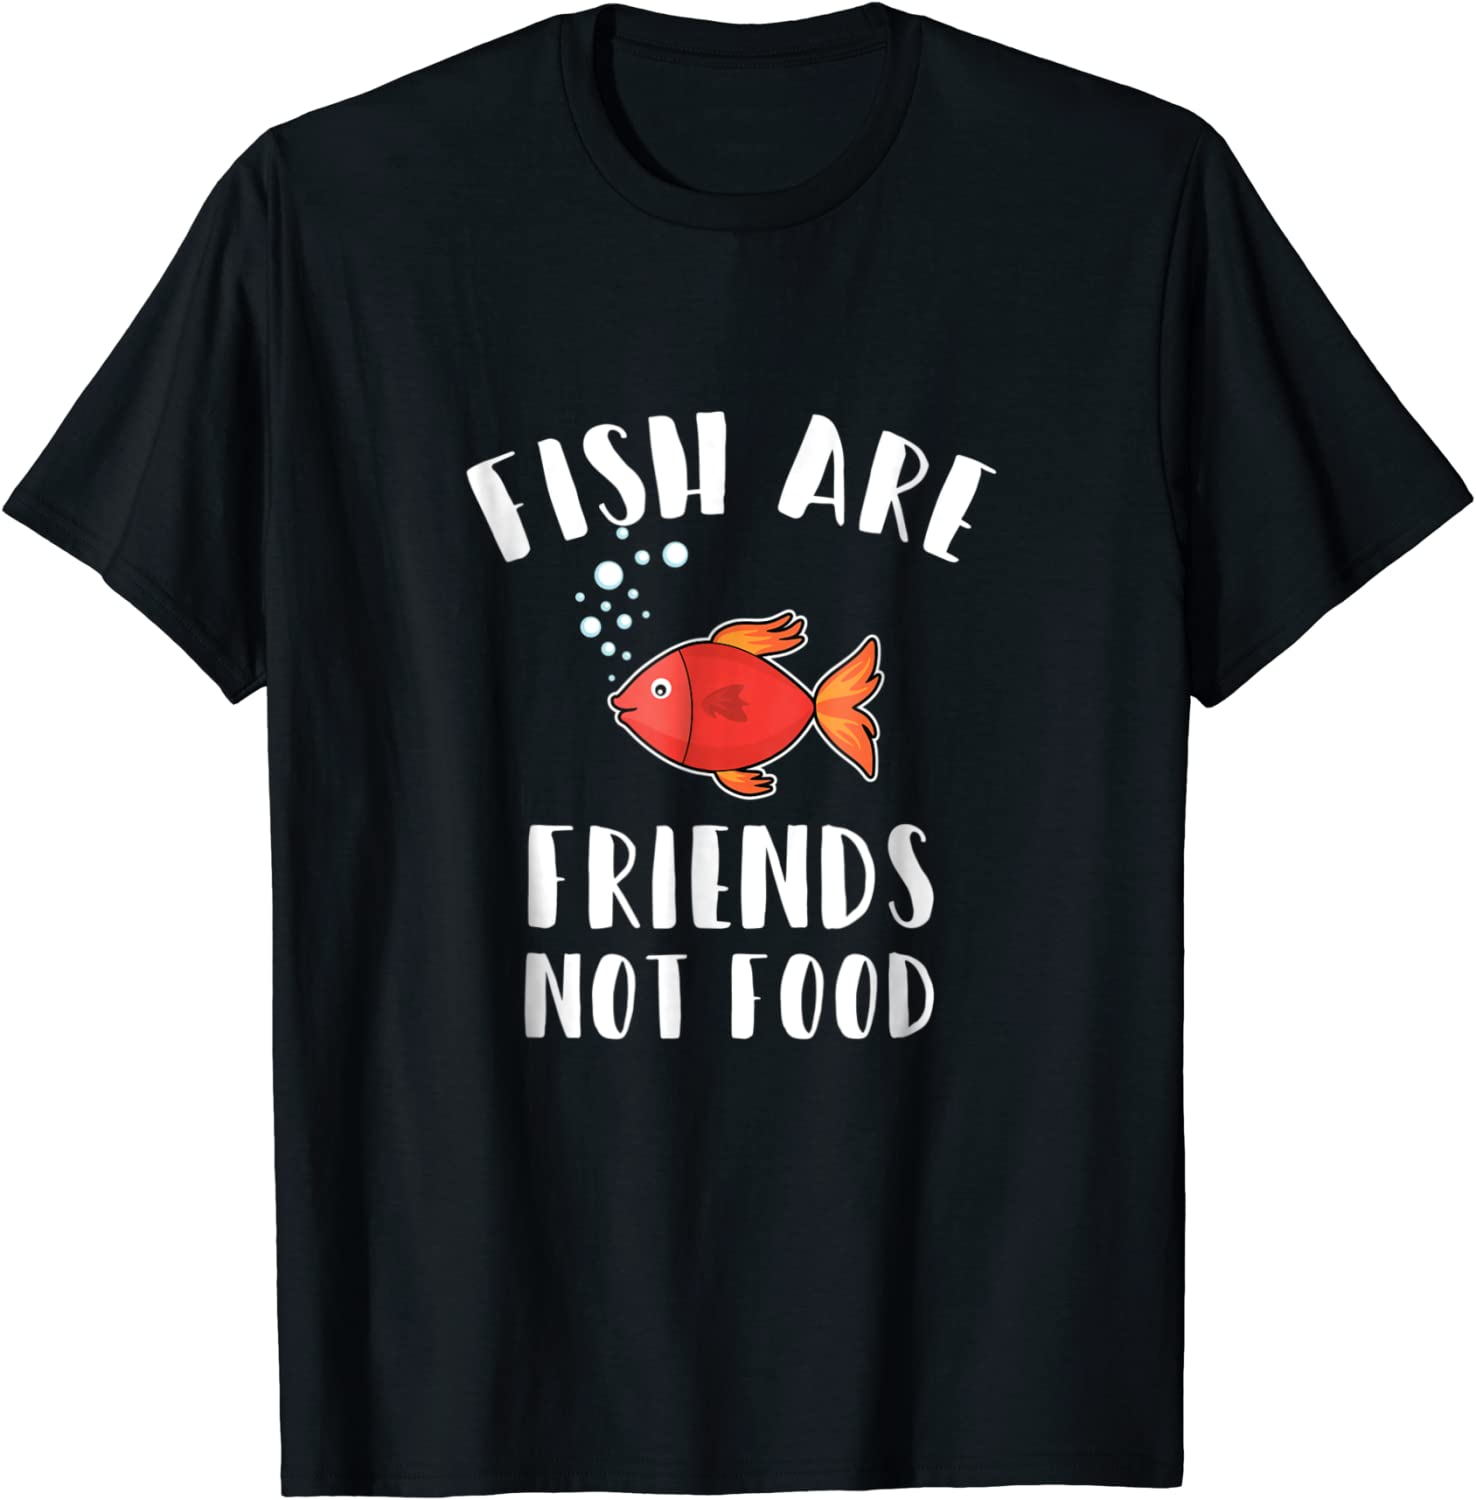 Fish are friends not food T-shirt not food